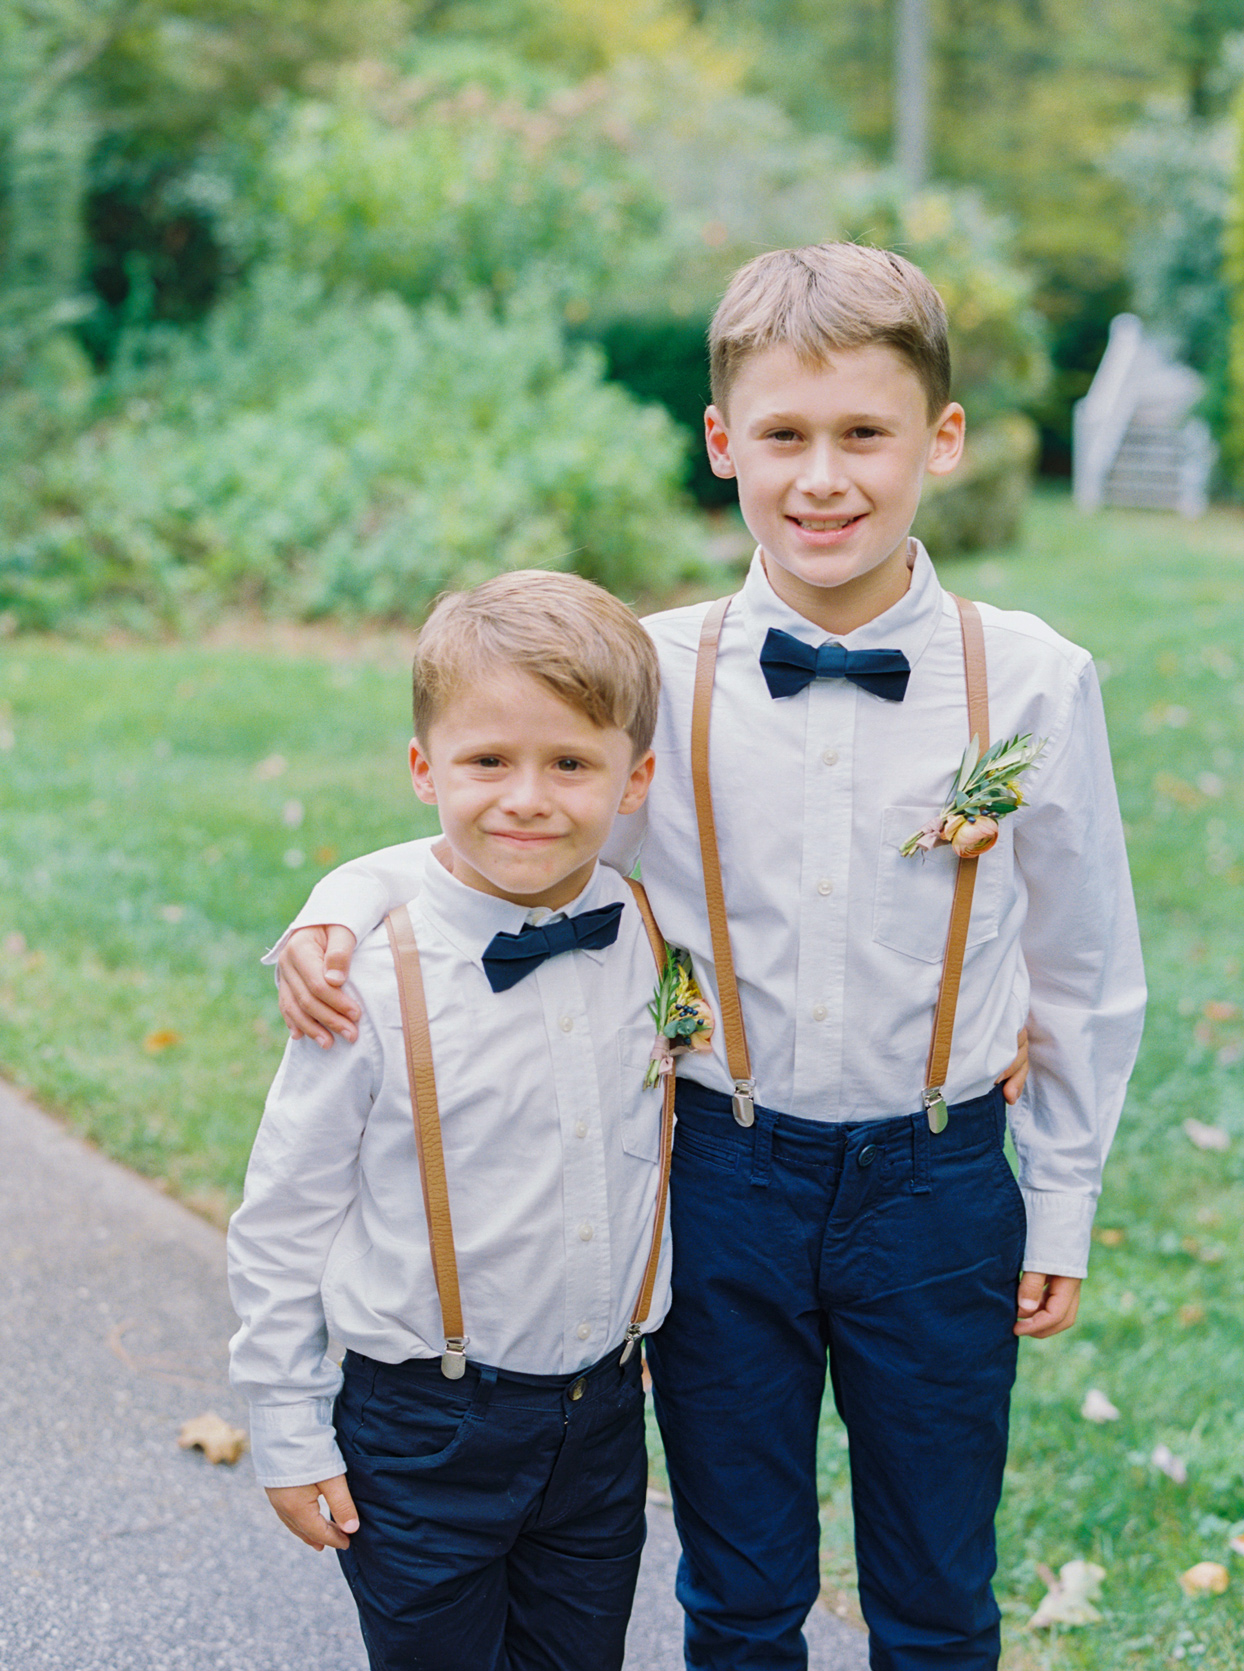 Two boys as best man and ring bearer